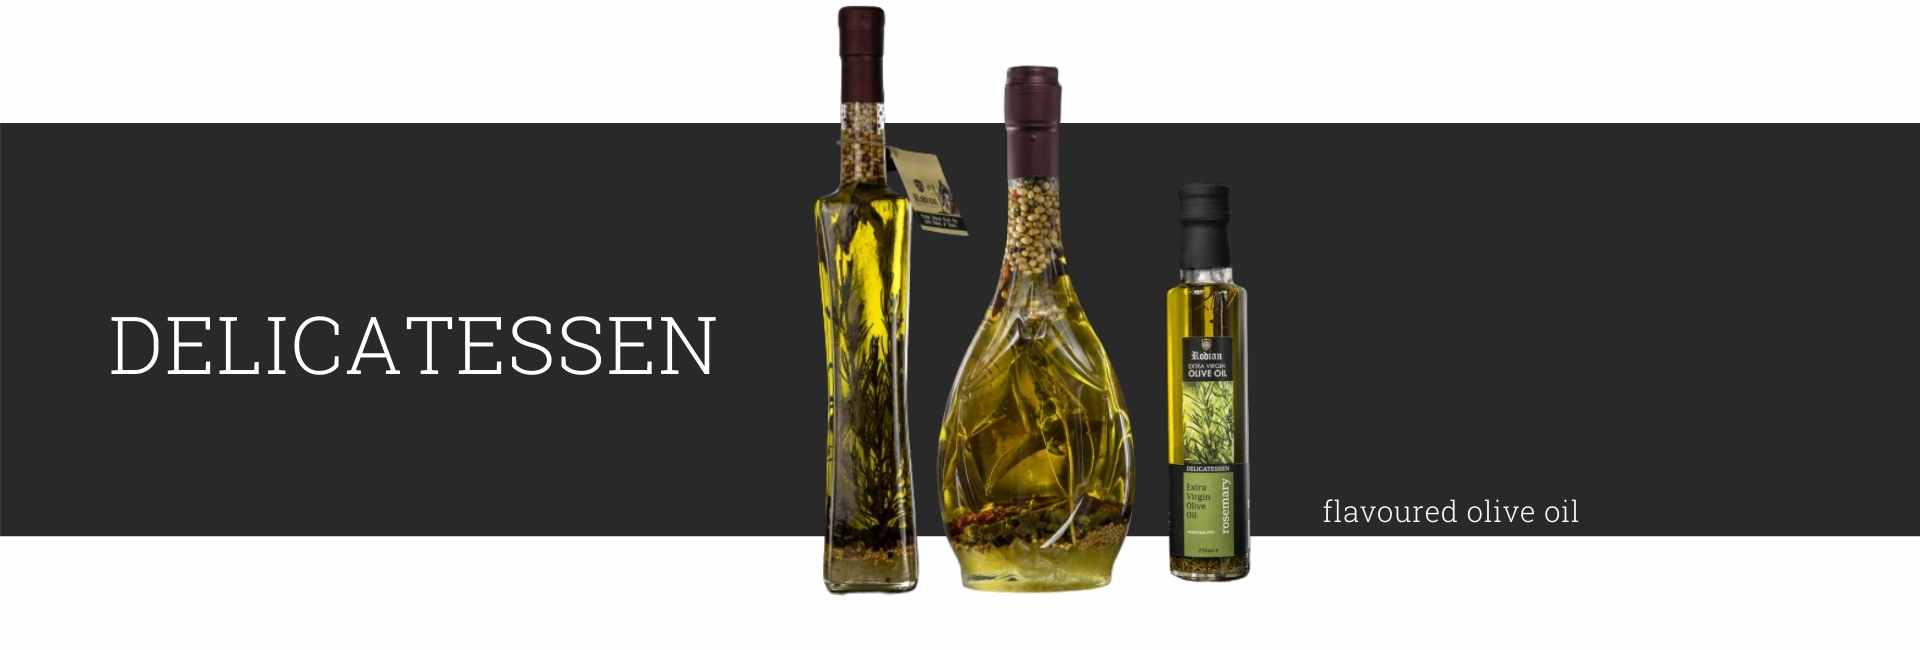 Buy Delicatessen Olive Oil with Flavours (Herbs & Spices)